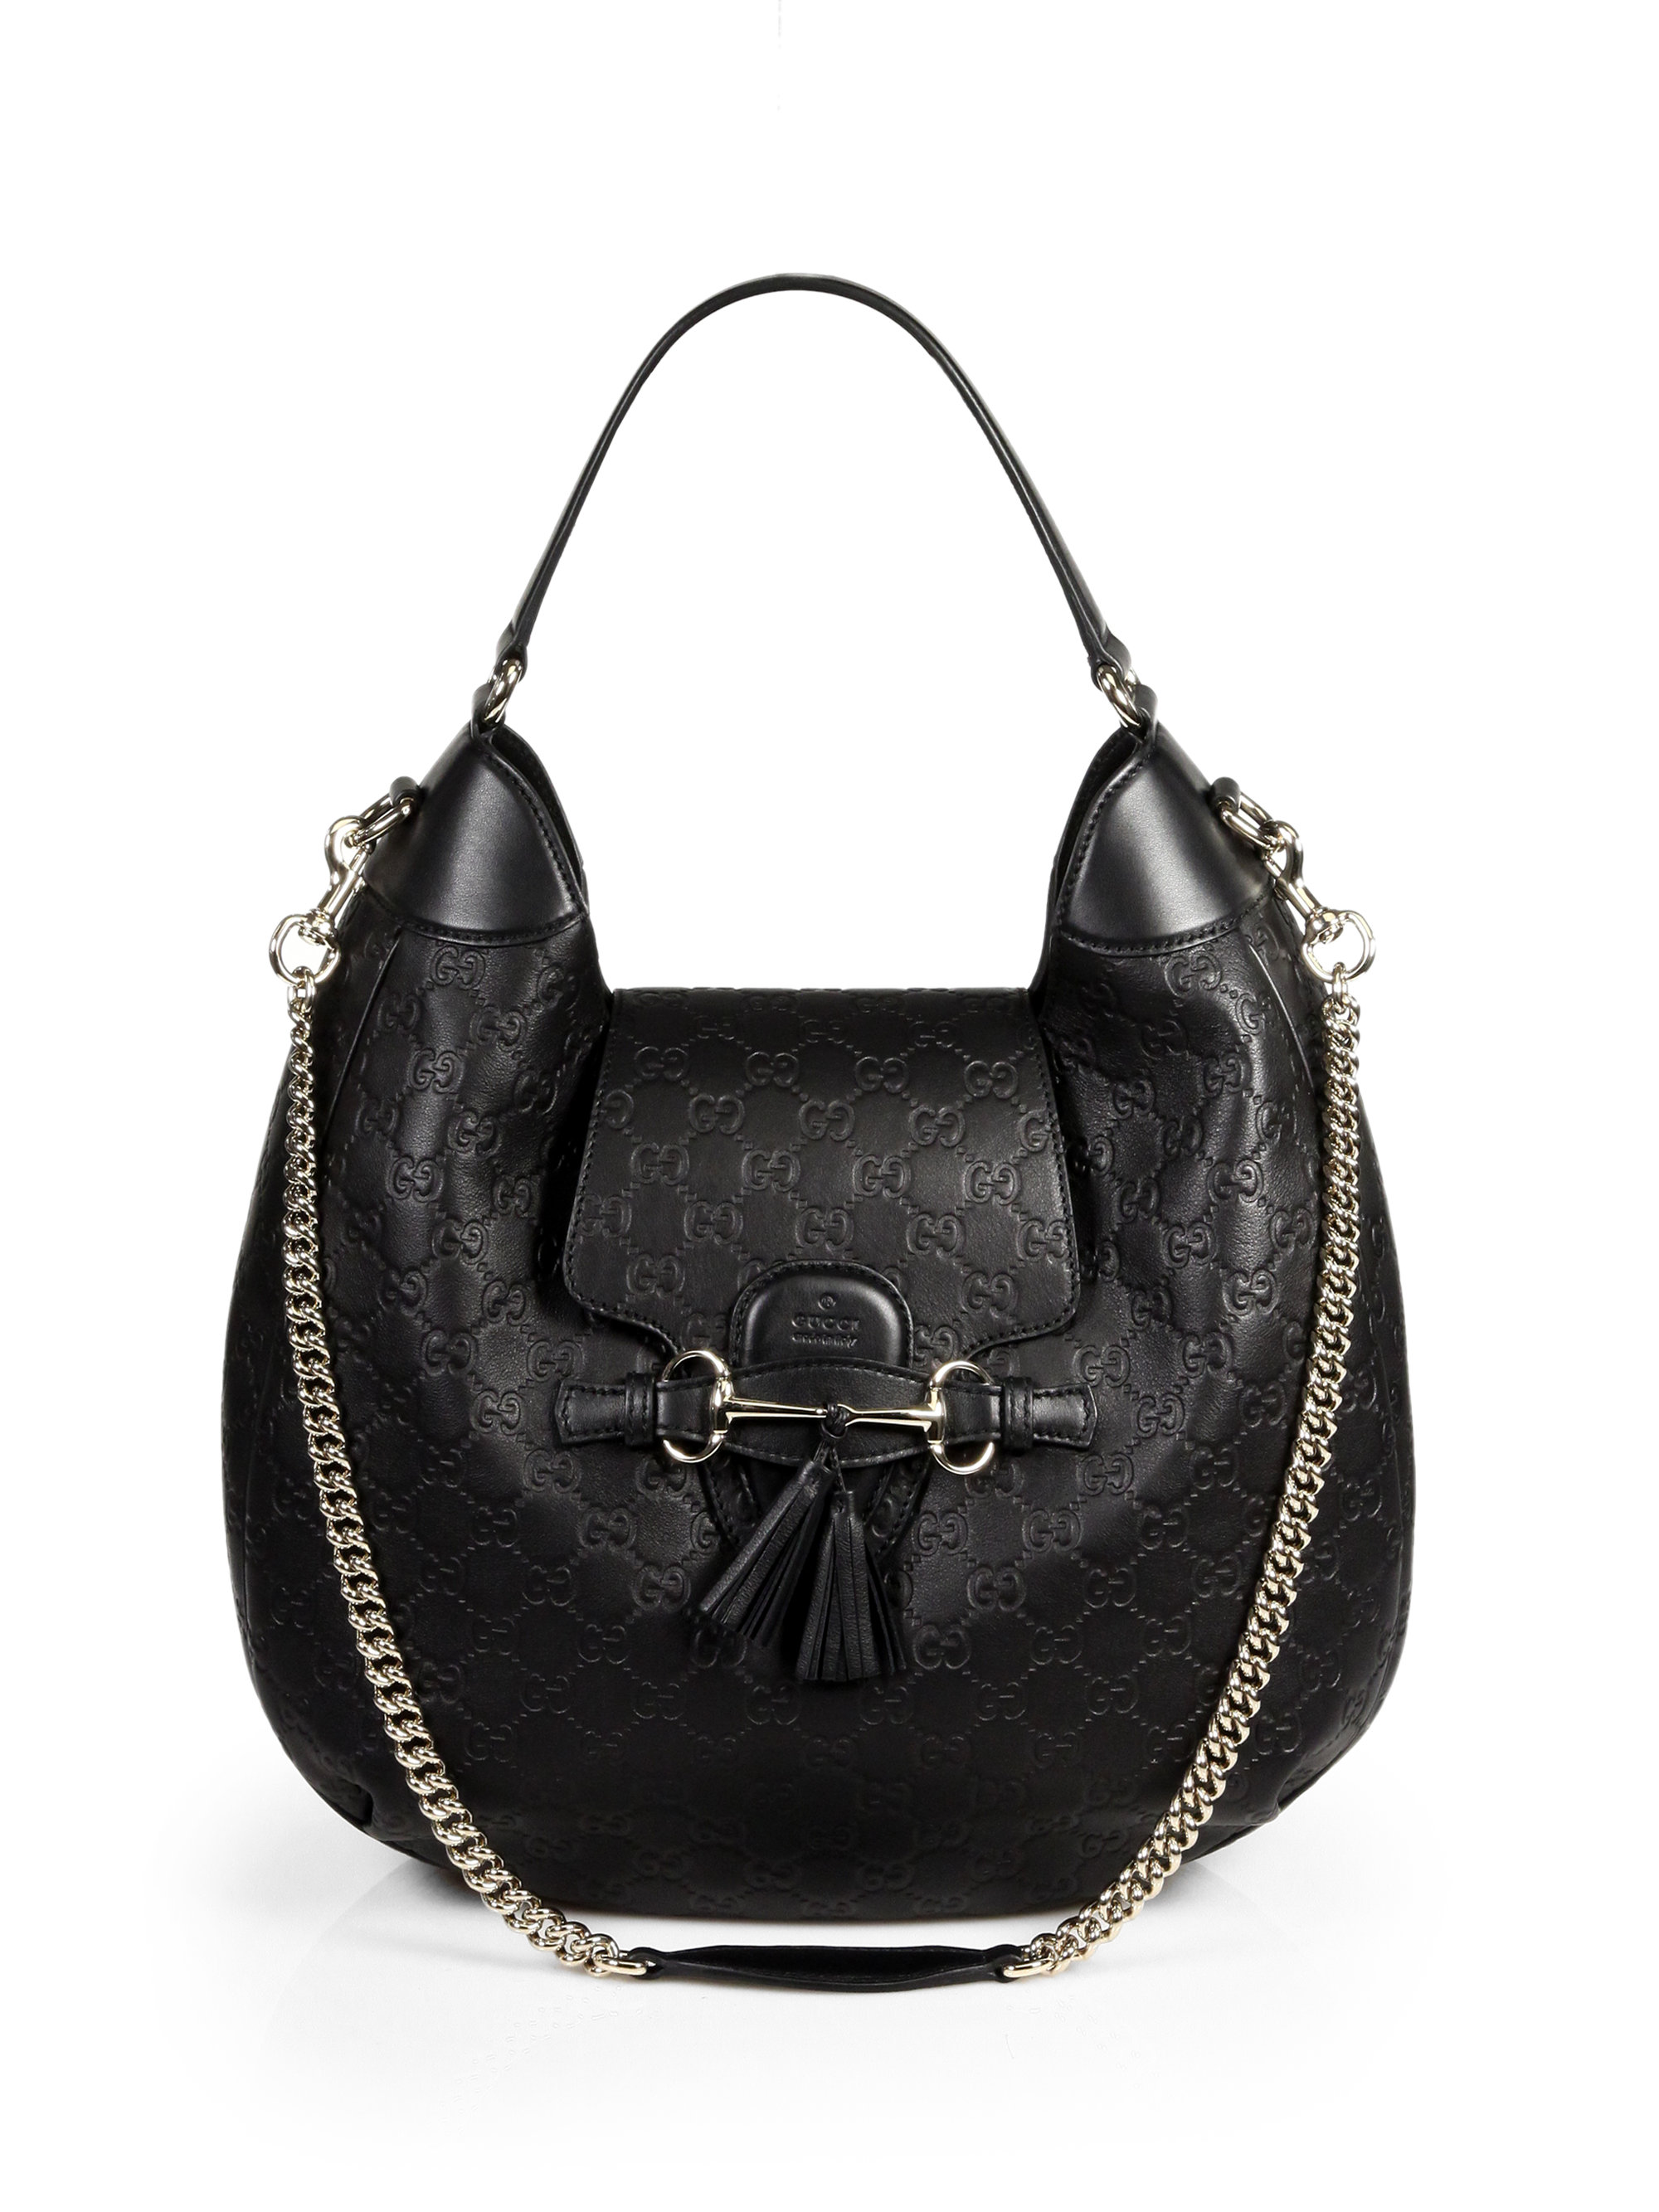 Lyst - Gucci Emily Leather Hobo in Black cced650be